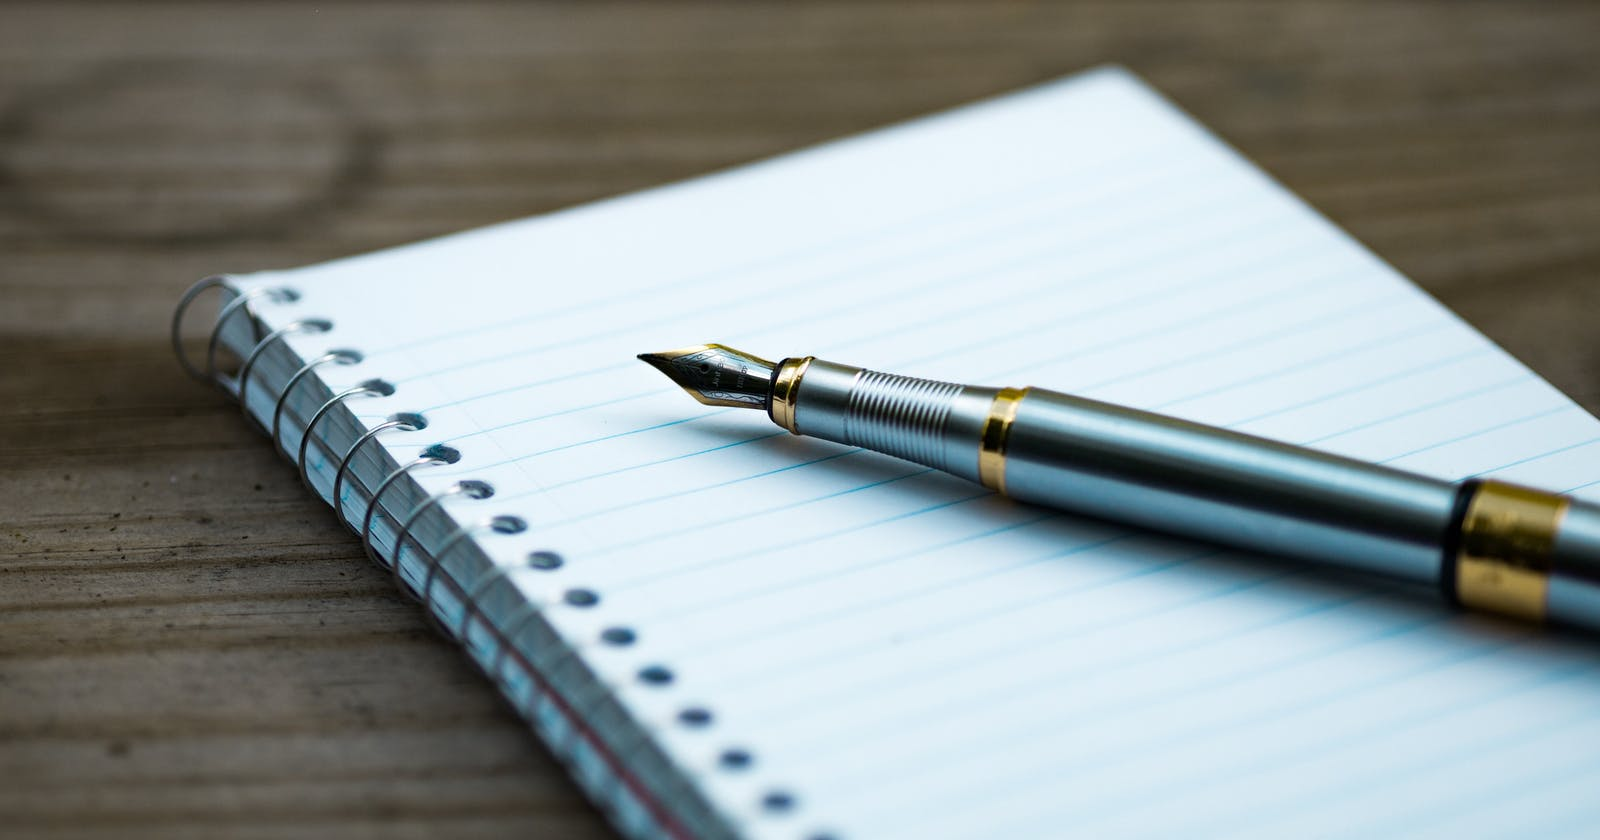 Book Notes: On Writing Well by William Zinsser